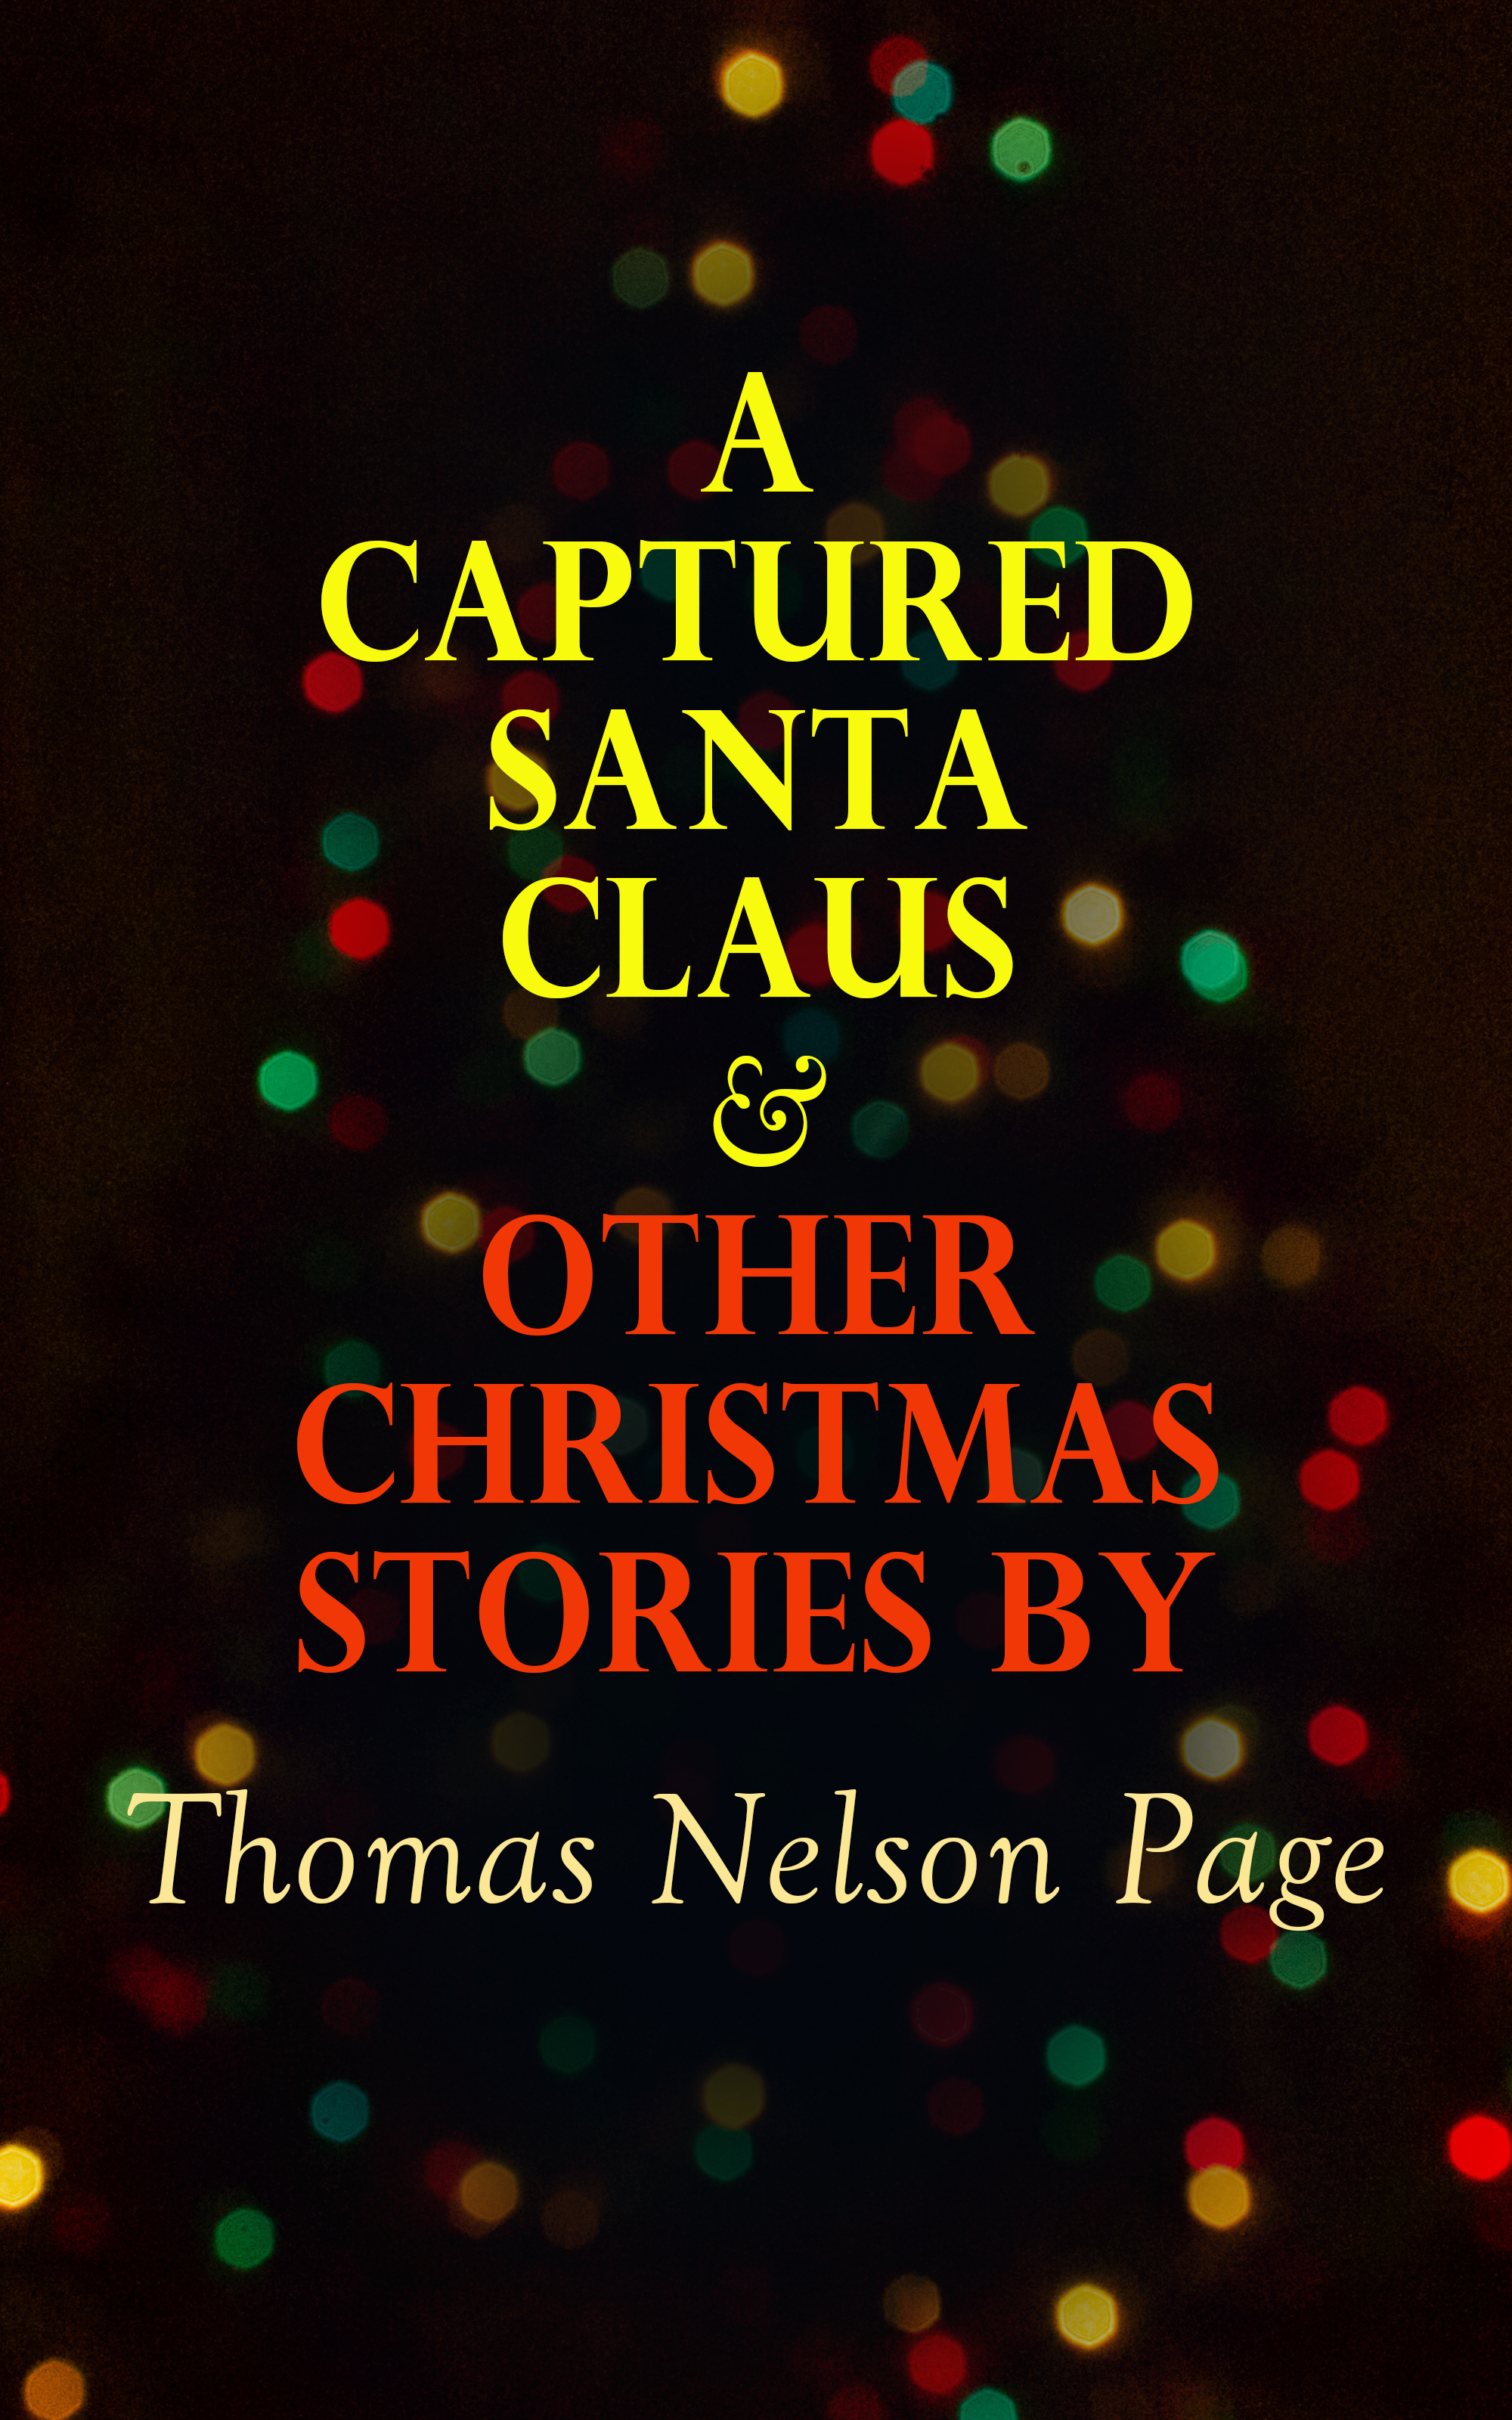 Thomas Nelson Page A Captured Santa Claus & Other Christmas Stories by Thomas Nelson Page sitemap html page 10 page 6 page 6 page 4 page 4 page 5 page 8